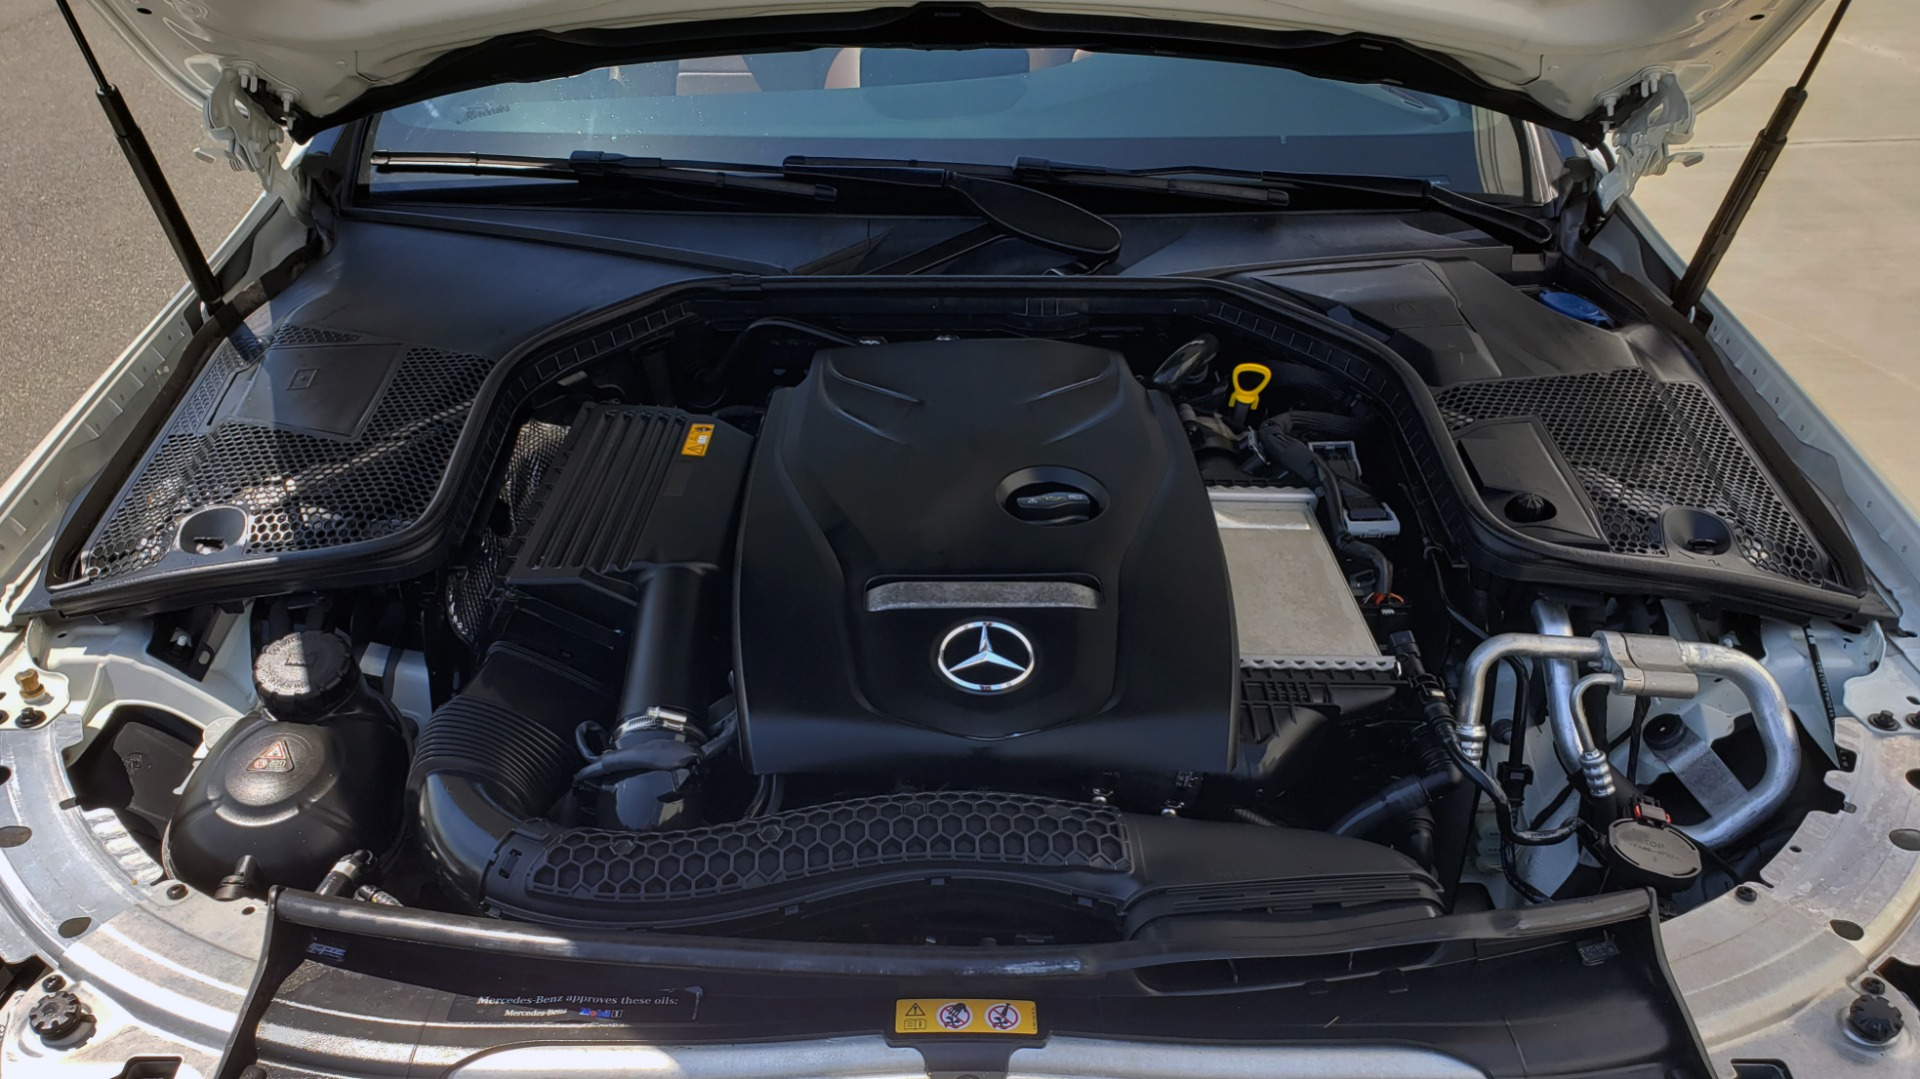 Used 2018 Mercedes-Benz C-CLASS C 300 CABRIOLET PREMIUM / AWD / BURMESTER SND / APPLE / REARVIEW for sale $44,995 at Formula Imports in Charlotte NC 28227 27